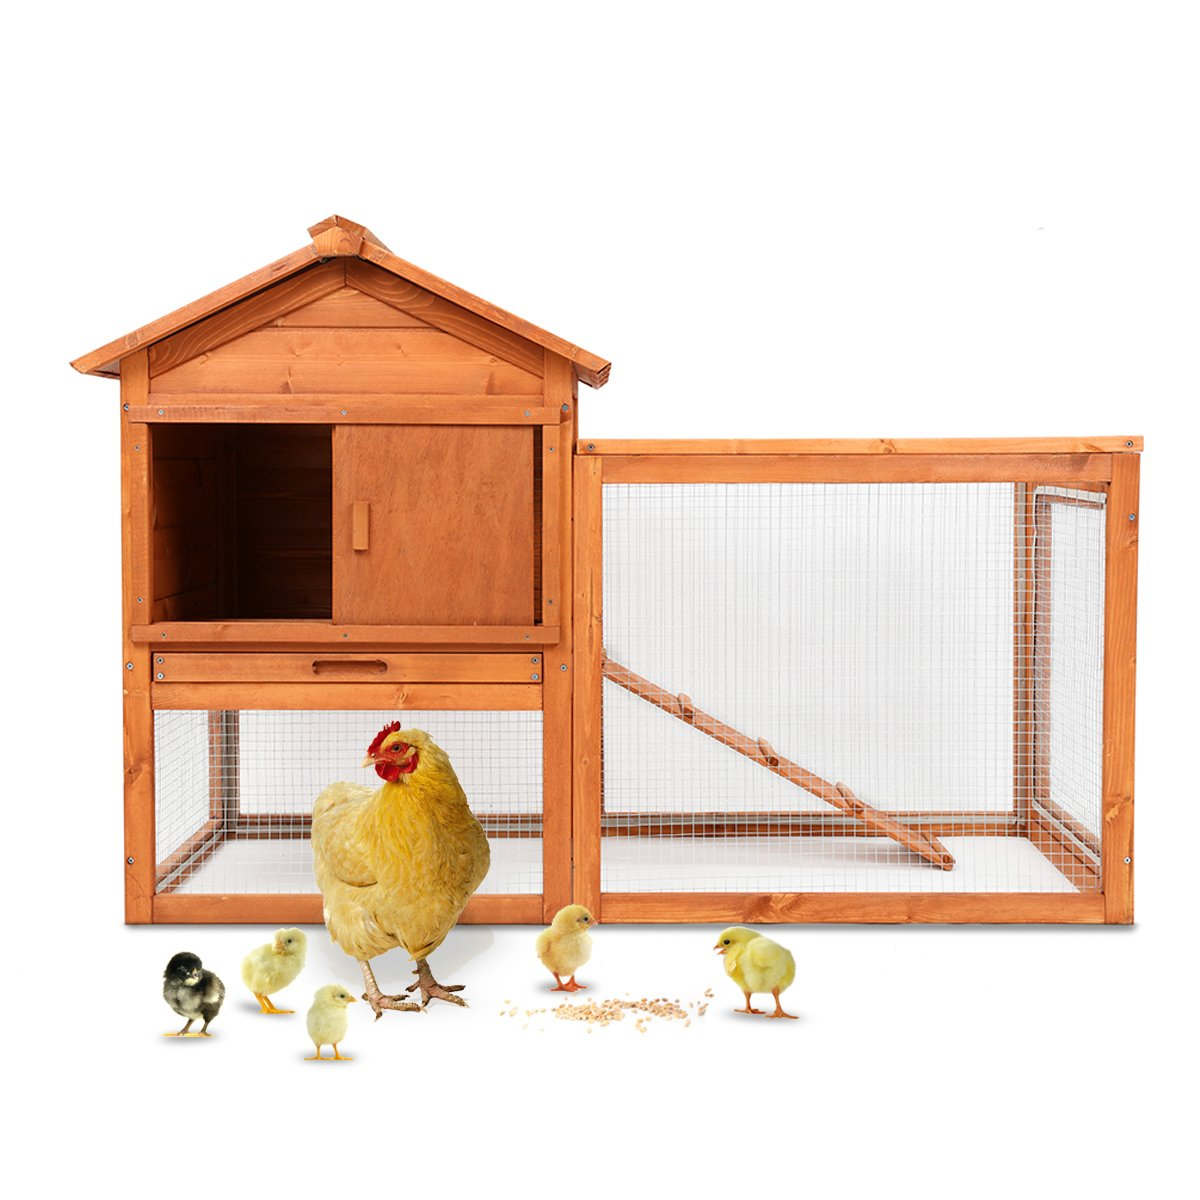 Magshion Wooden Chicken Coop Rabbit Bunny Hutch Pet Cage Wood Small Animal Poultry Cage Run Indoor